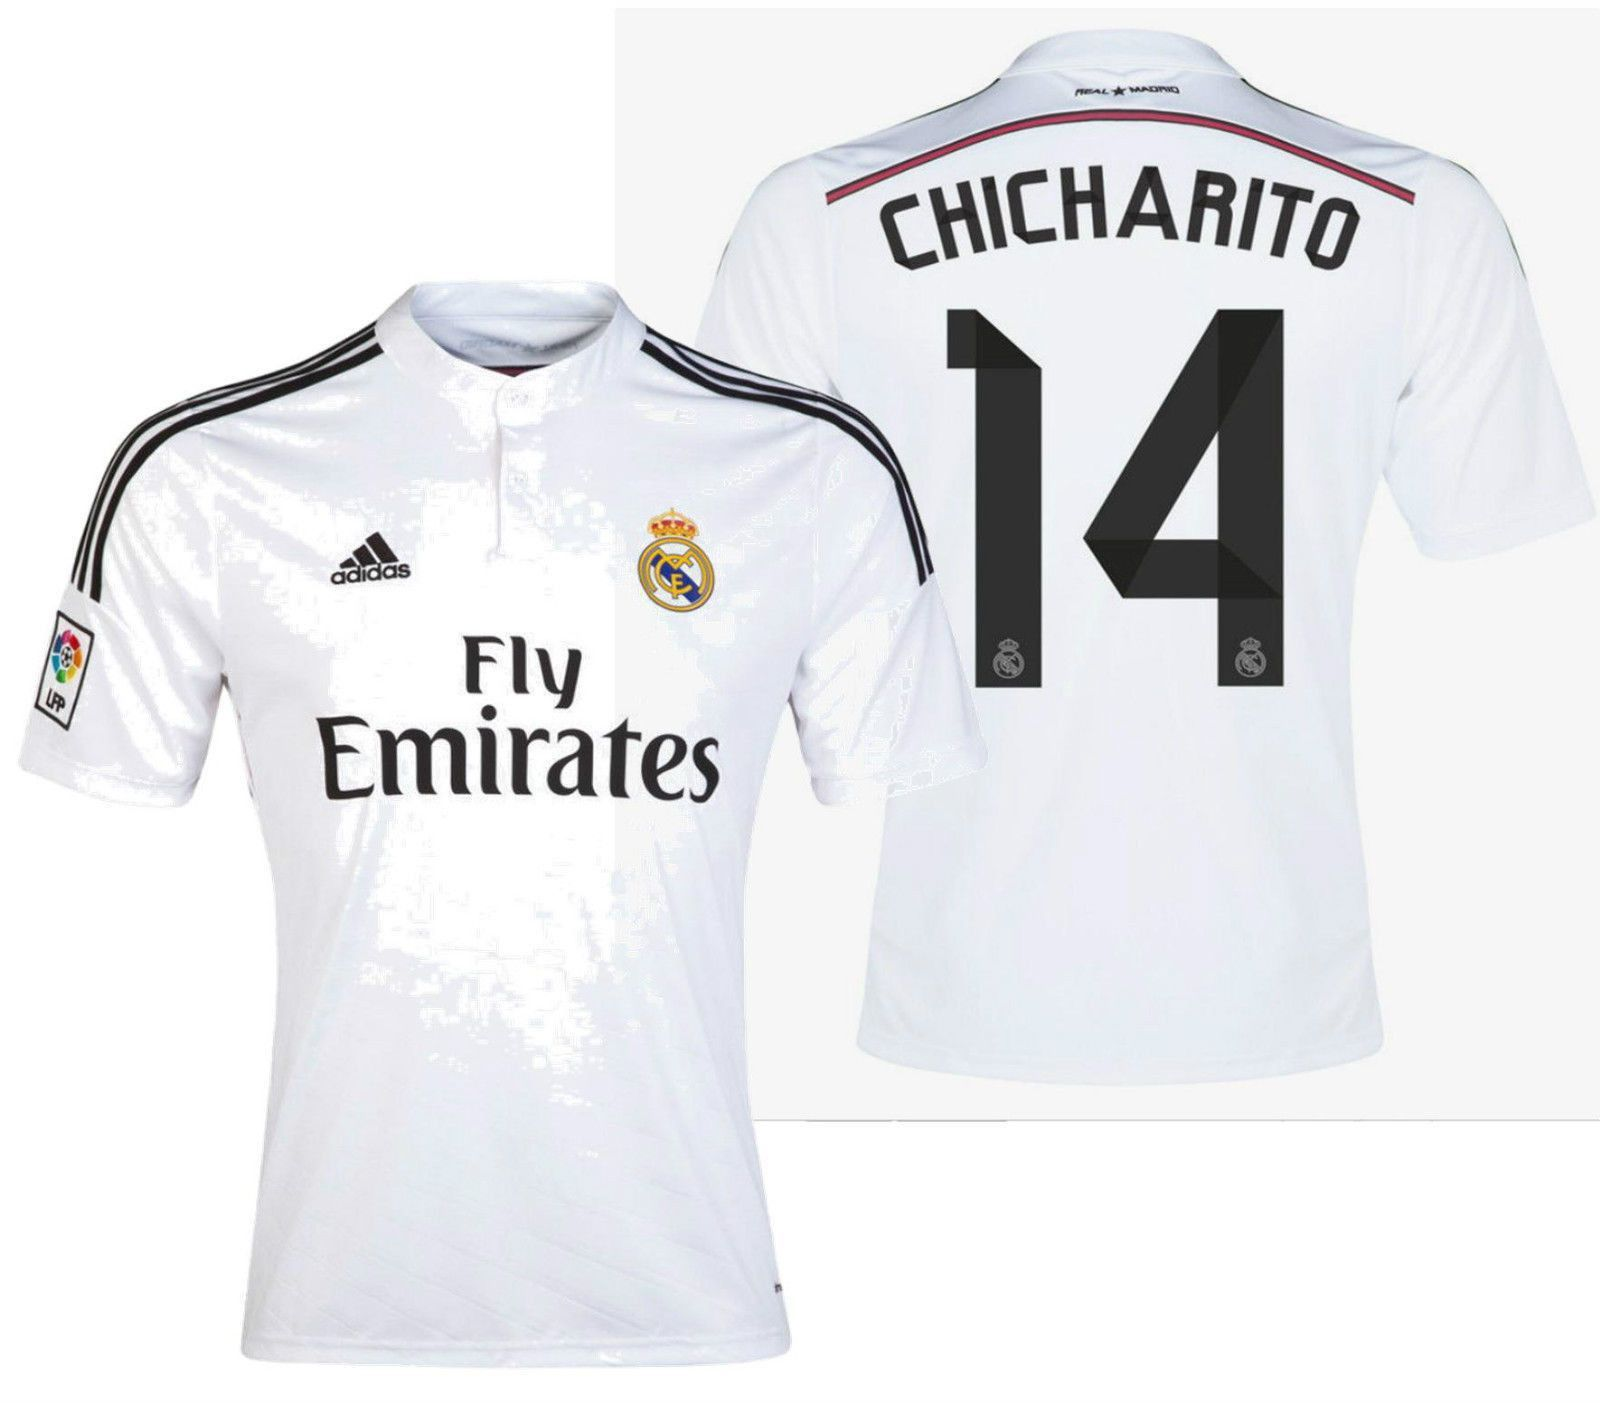 sports shoes c3d91 0d721 ADIDAS CHICHARITO REAL MADRID HOME JERSEY 2014/15 ...